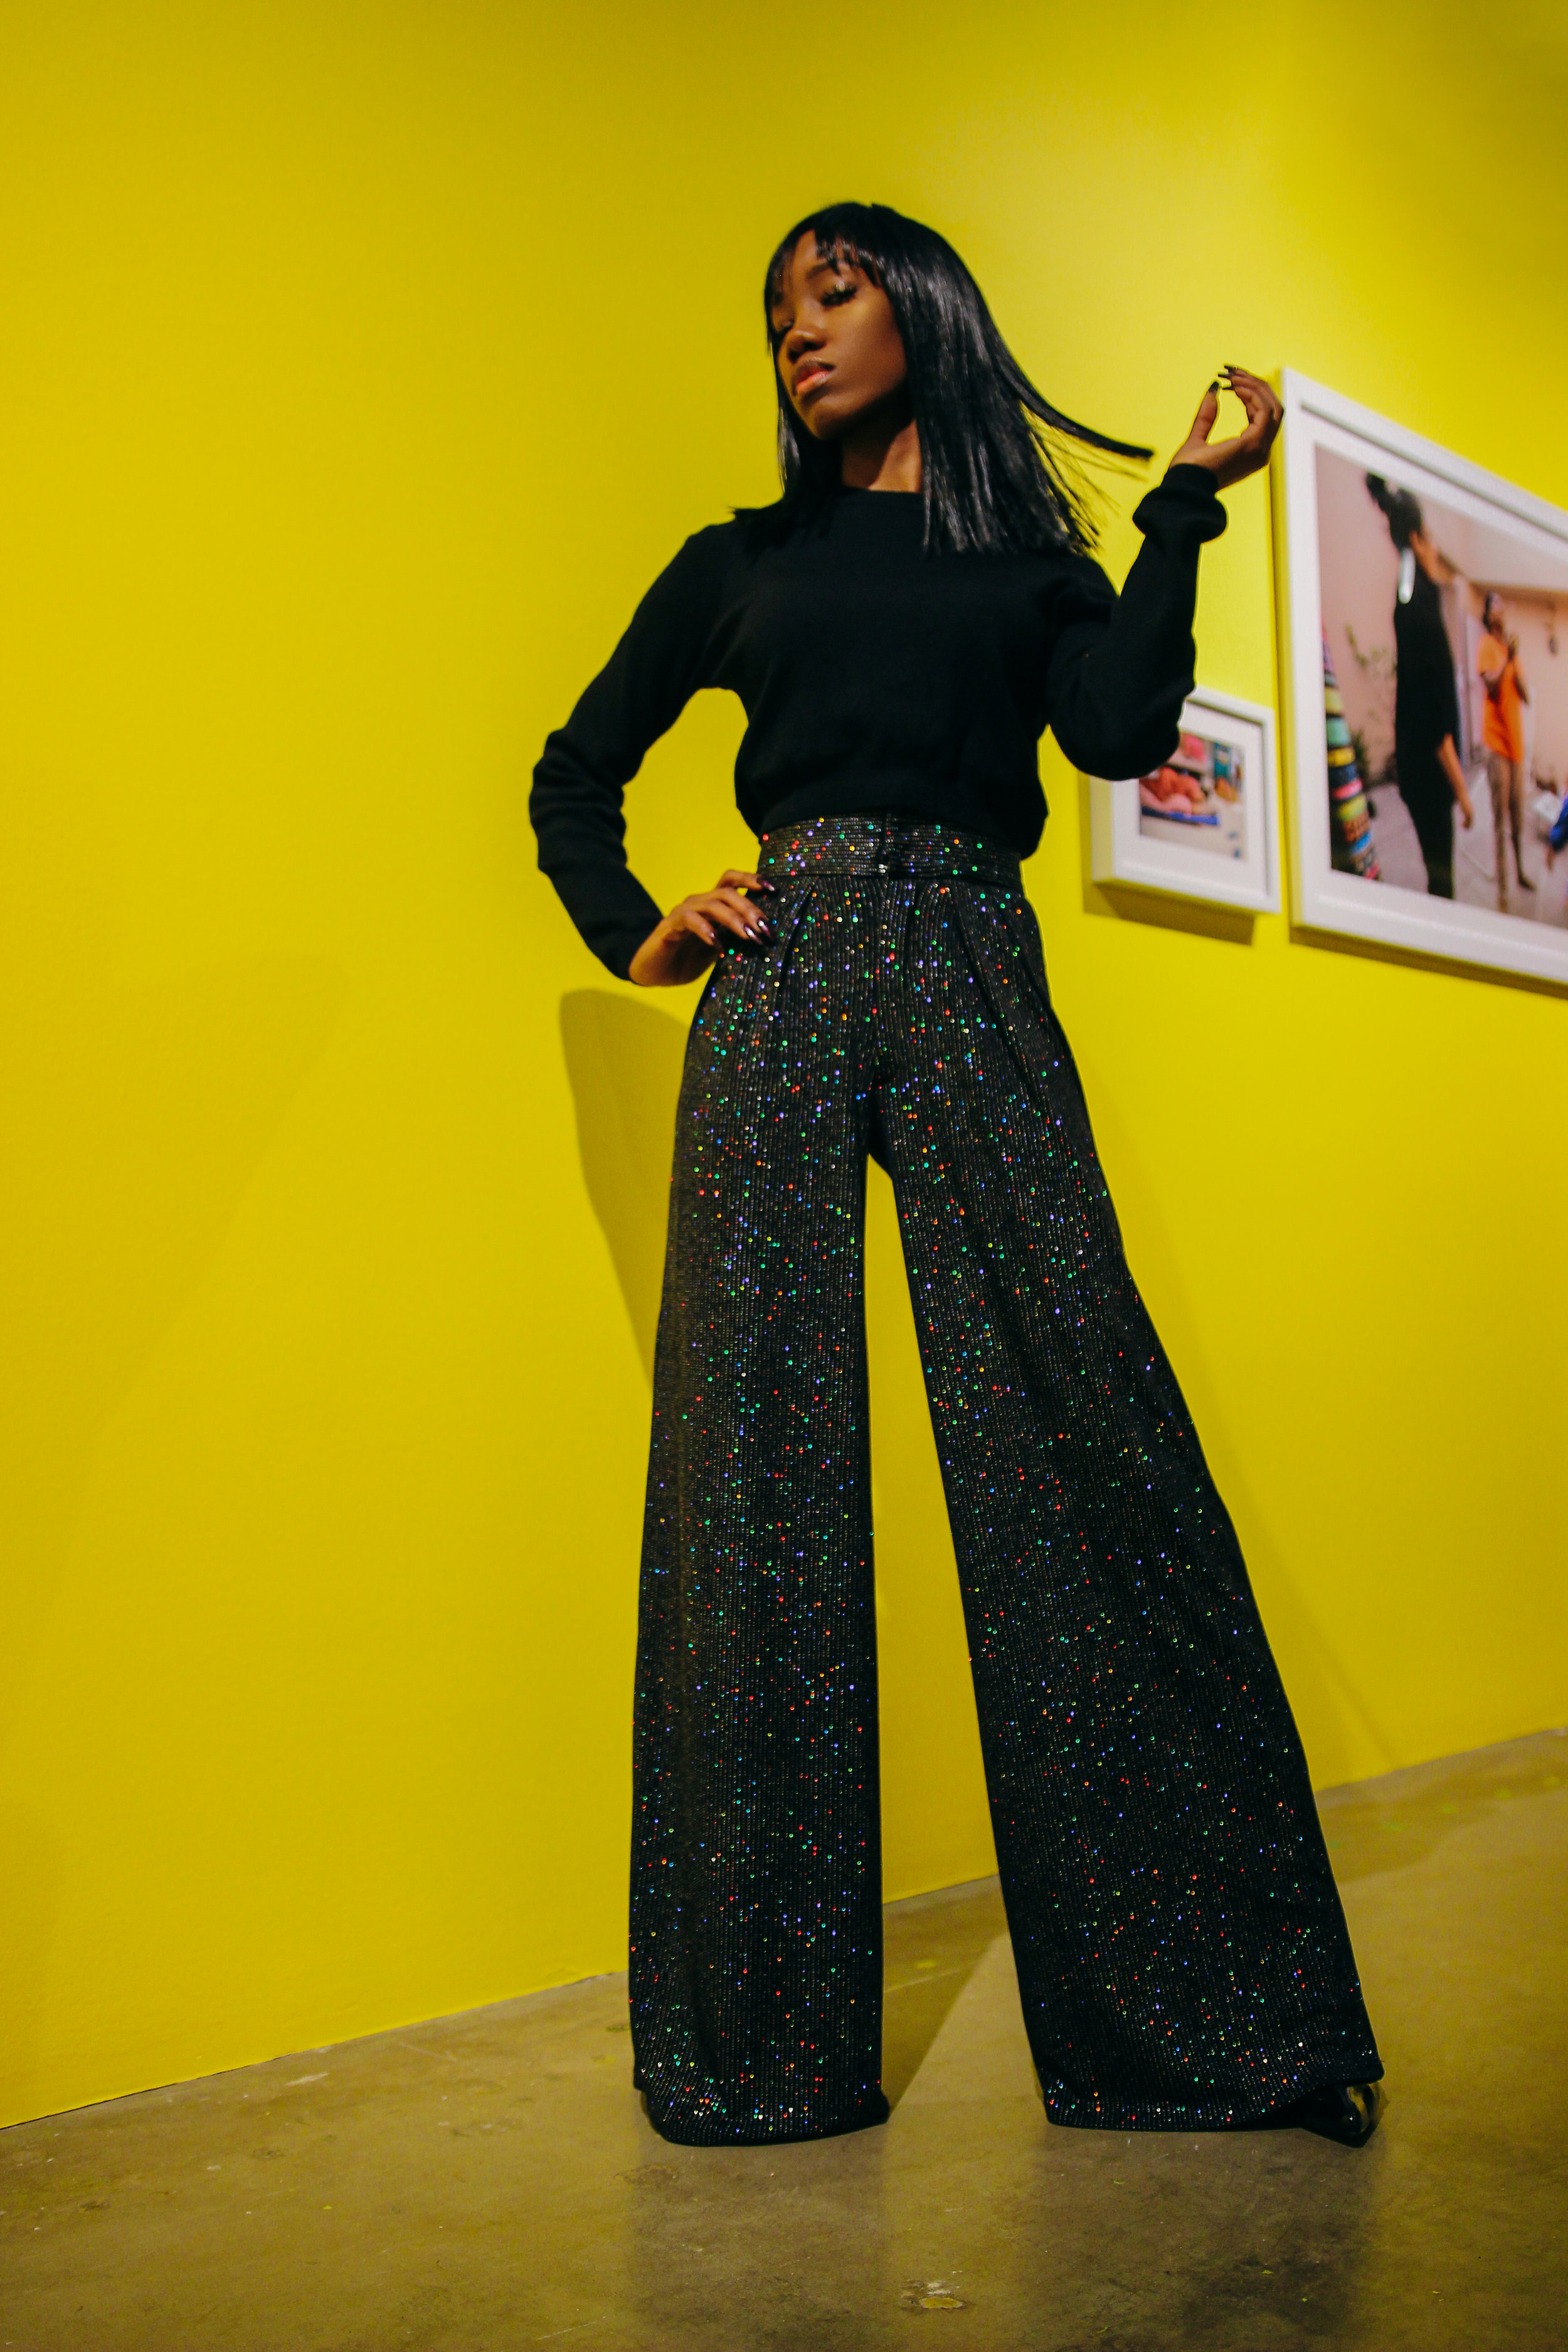 Pants:   Kloset Envy  ||  Top:   Forever XXI ||  Shoes:  Random Boutique Off South Street in Philly